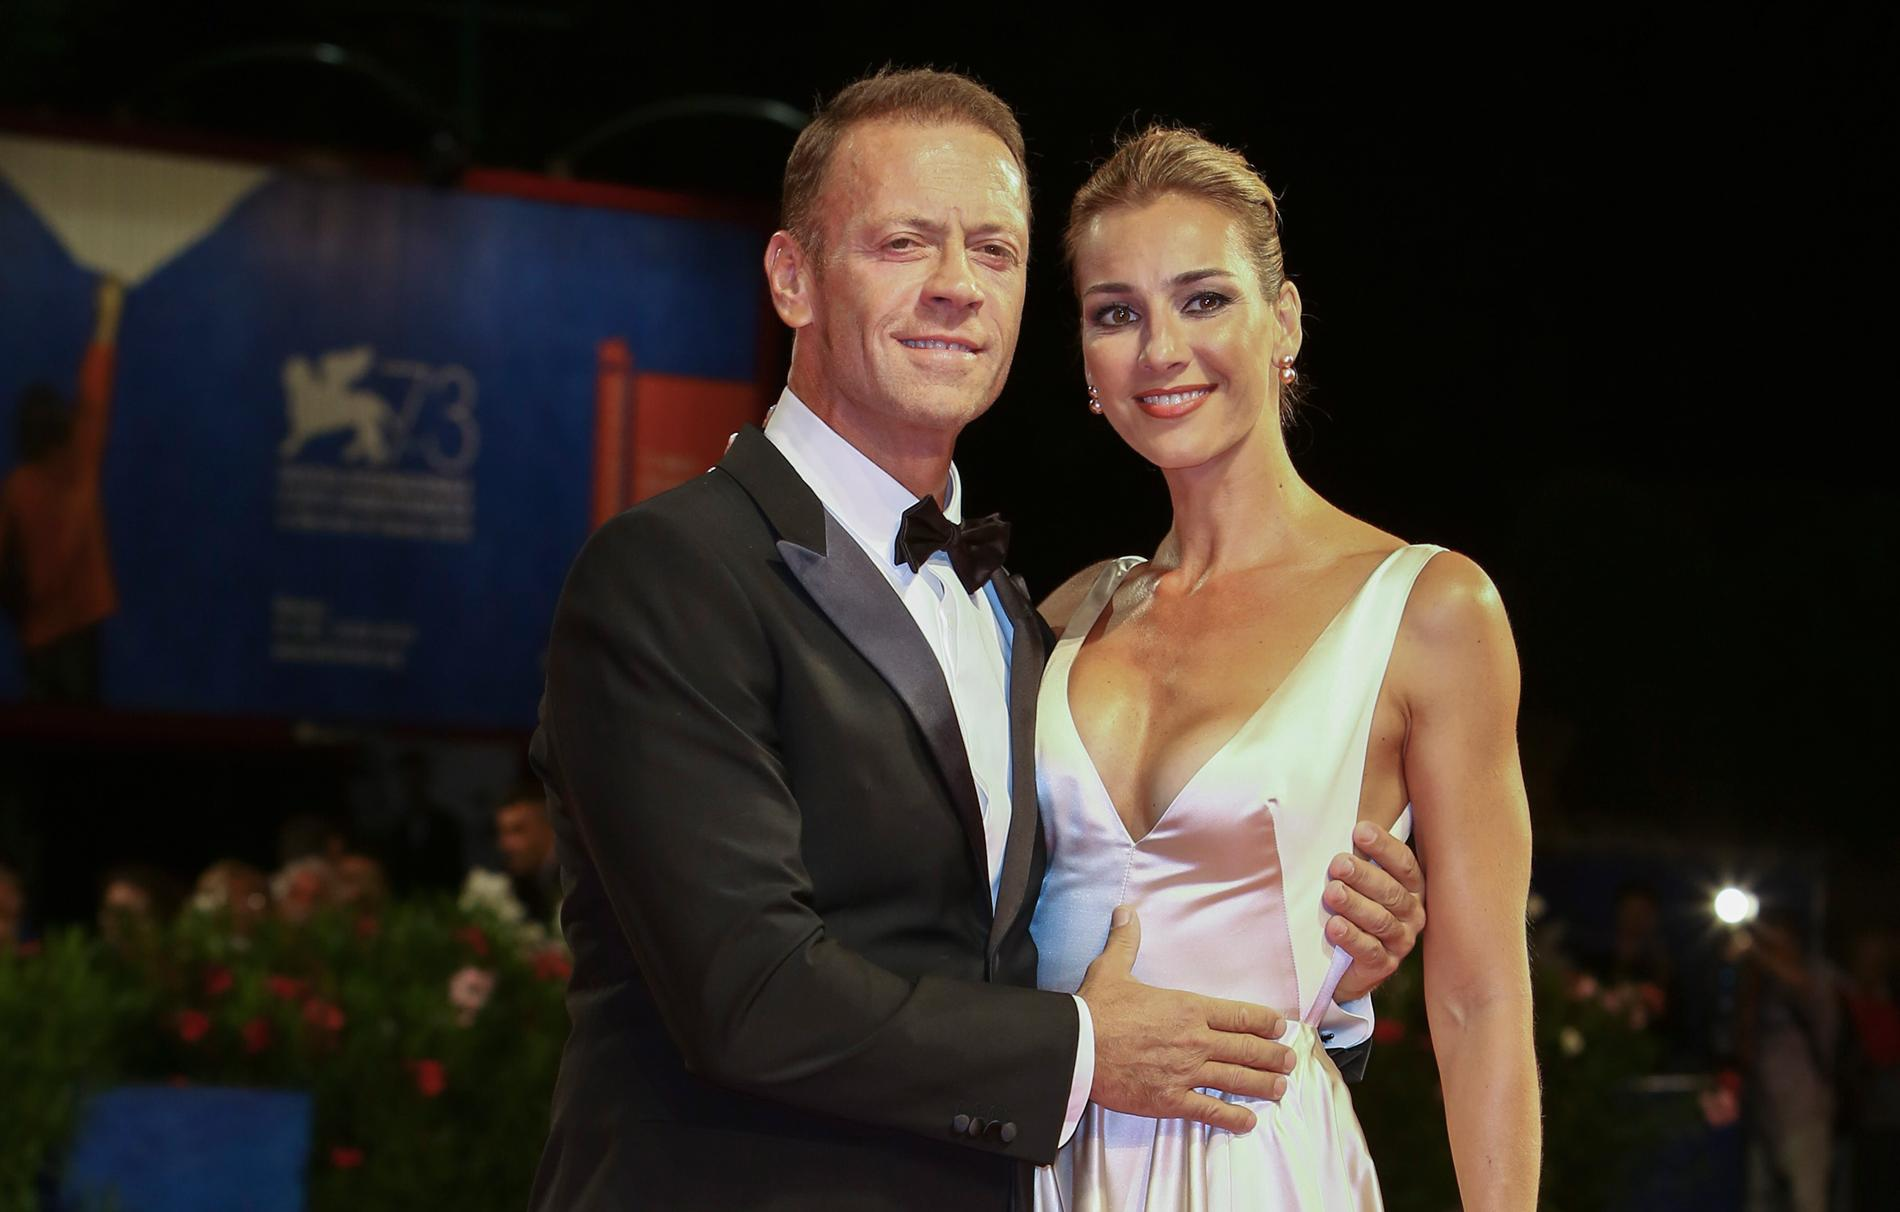 Hot. Another Rocco siffredi porn heißt der